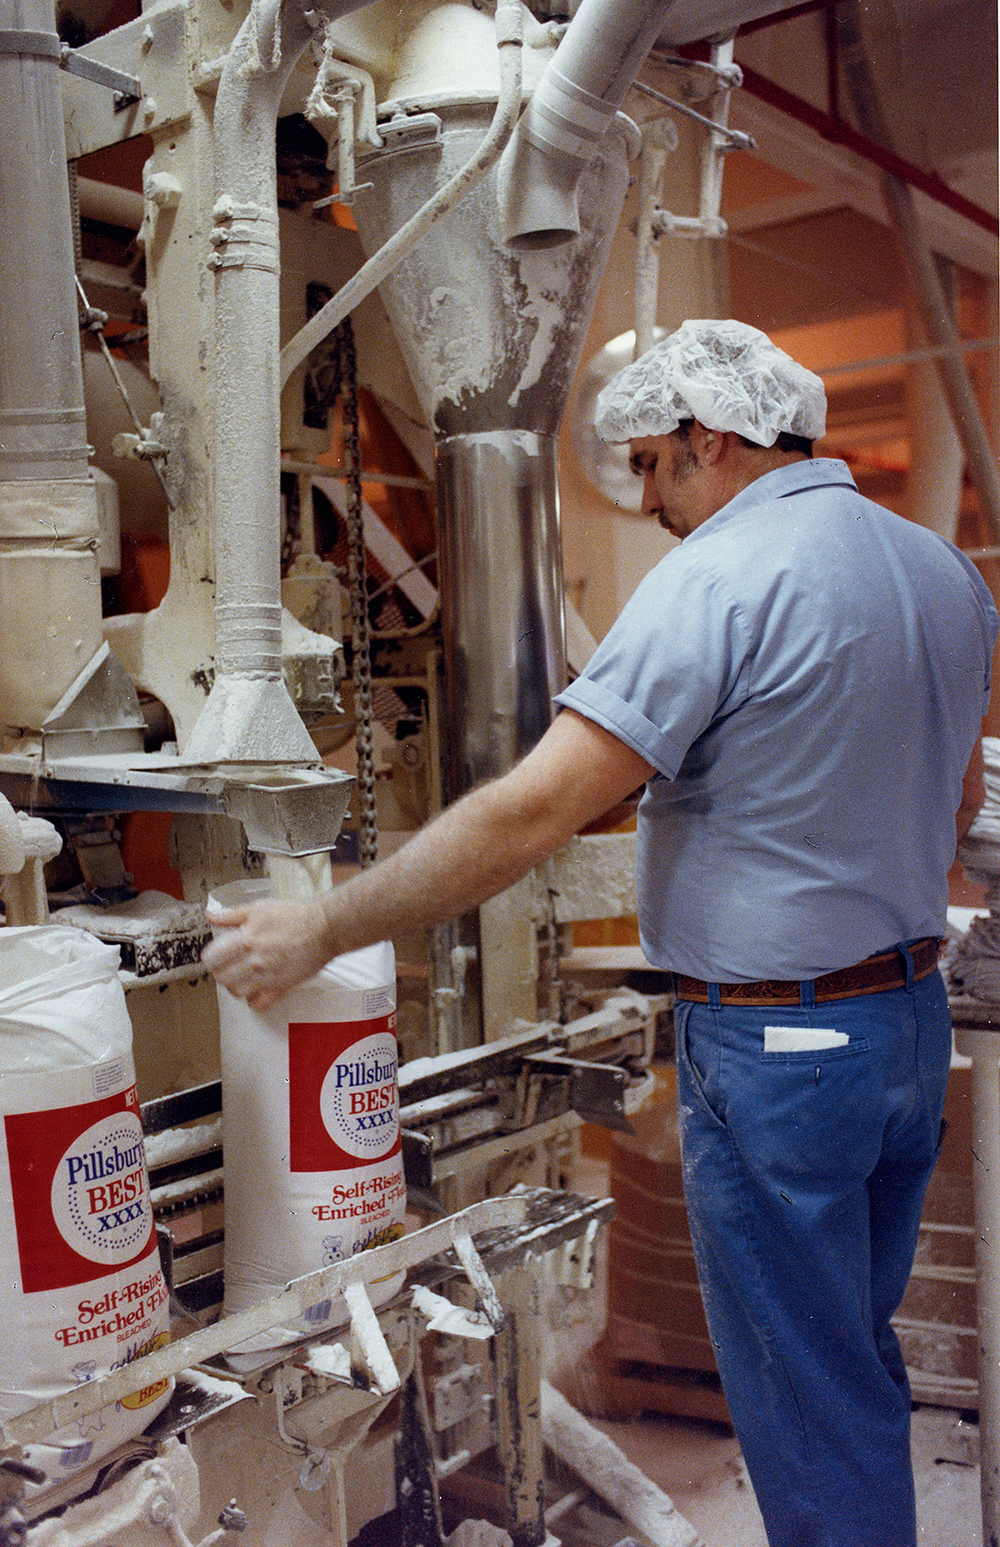 Pillsbury Mills, Feb. 1, 1989. Joe Lewis fills 25 lb. bags of flour. File/The State Journal-Register